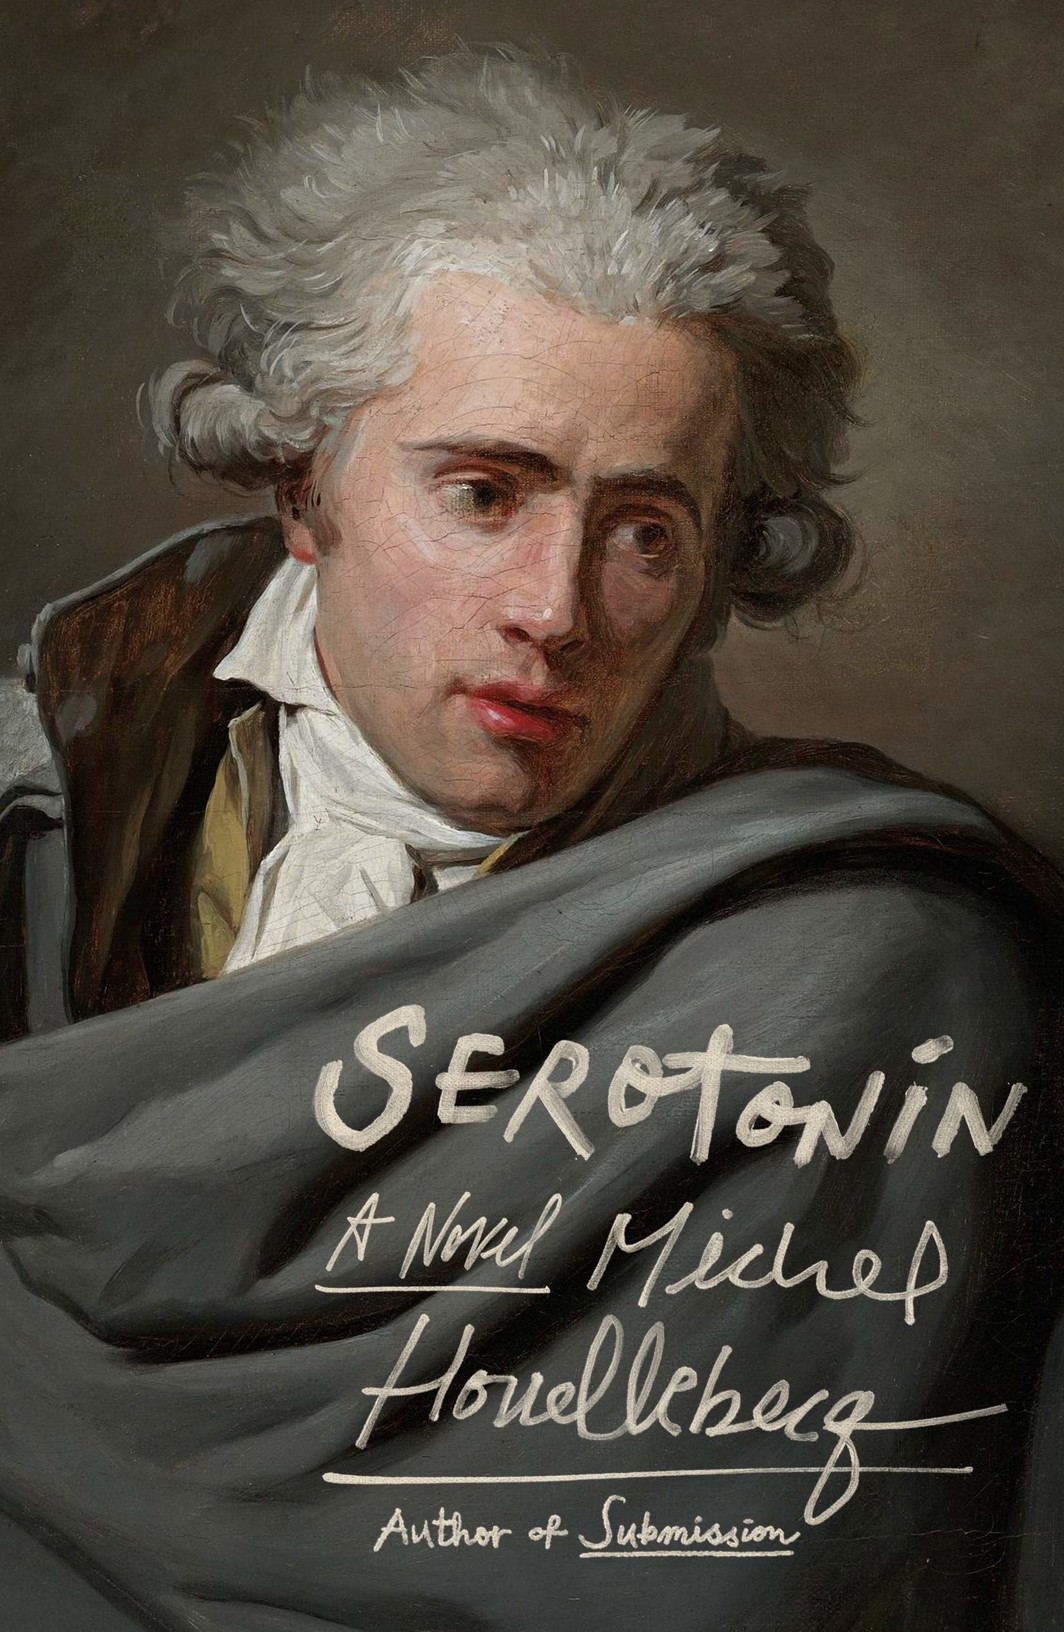 The cover of Serotonin